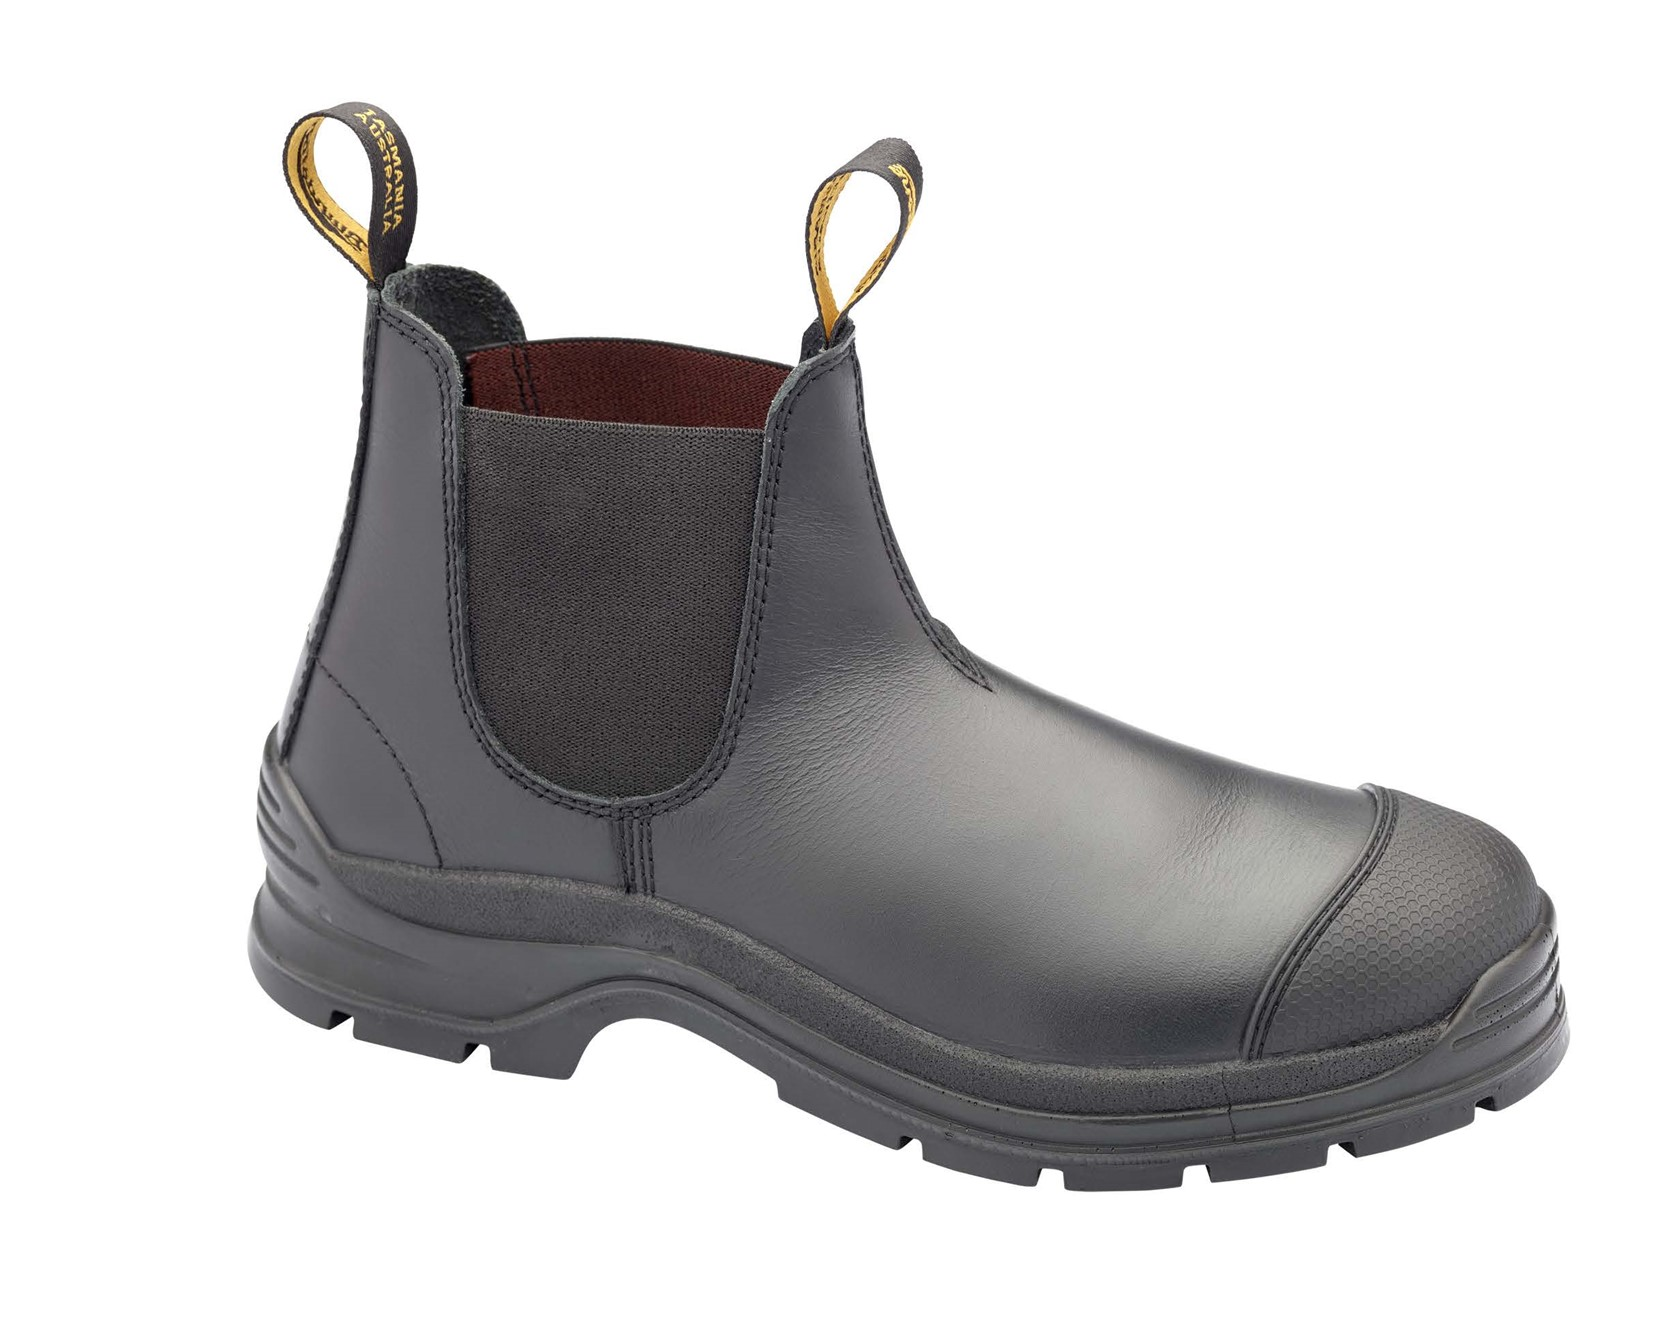 BLUNDSTONE 320 - ELASTIC BOOT - SIZE 8